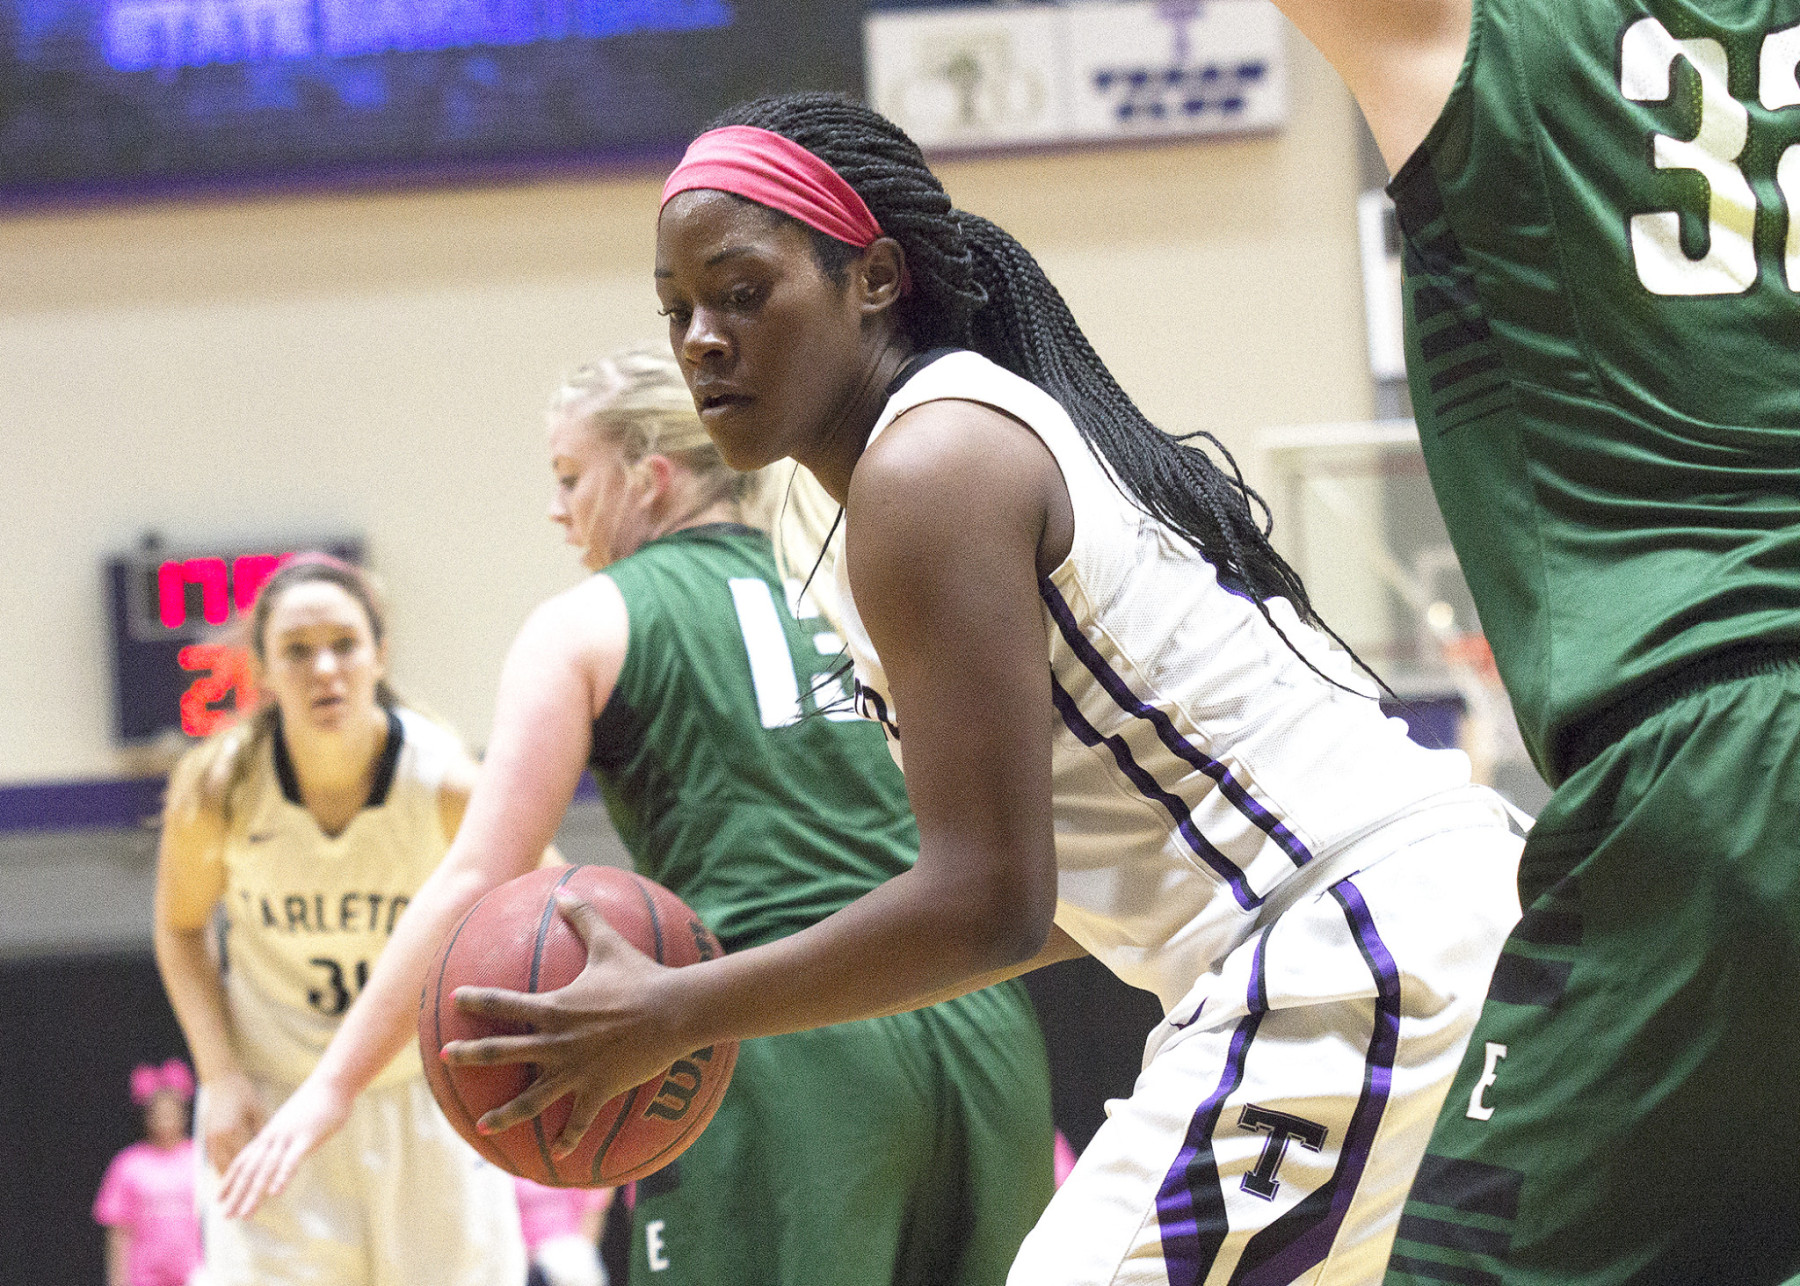 Tarleton sophomore forward Ikpeaku Iwobi had her eighth double-double Saturday night. || Photo by Dr. CHET MARTIN